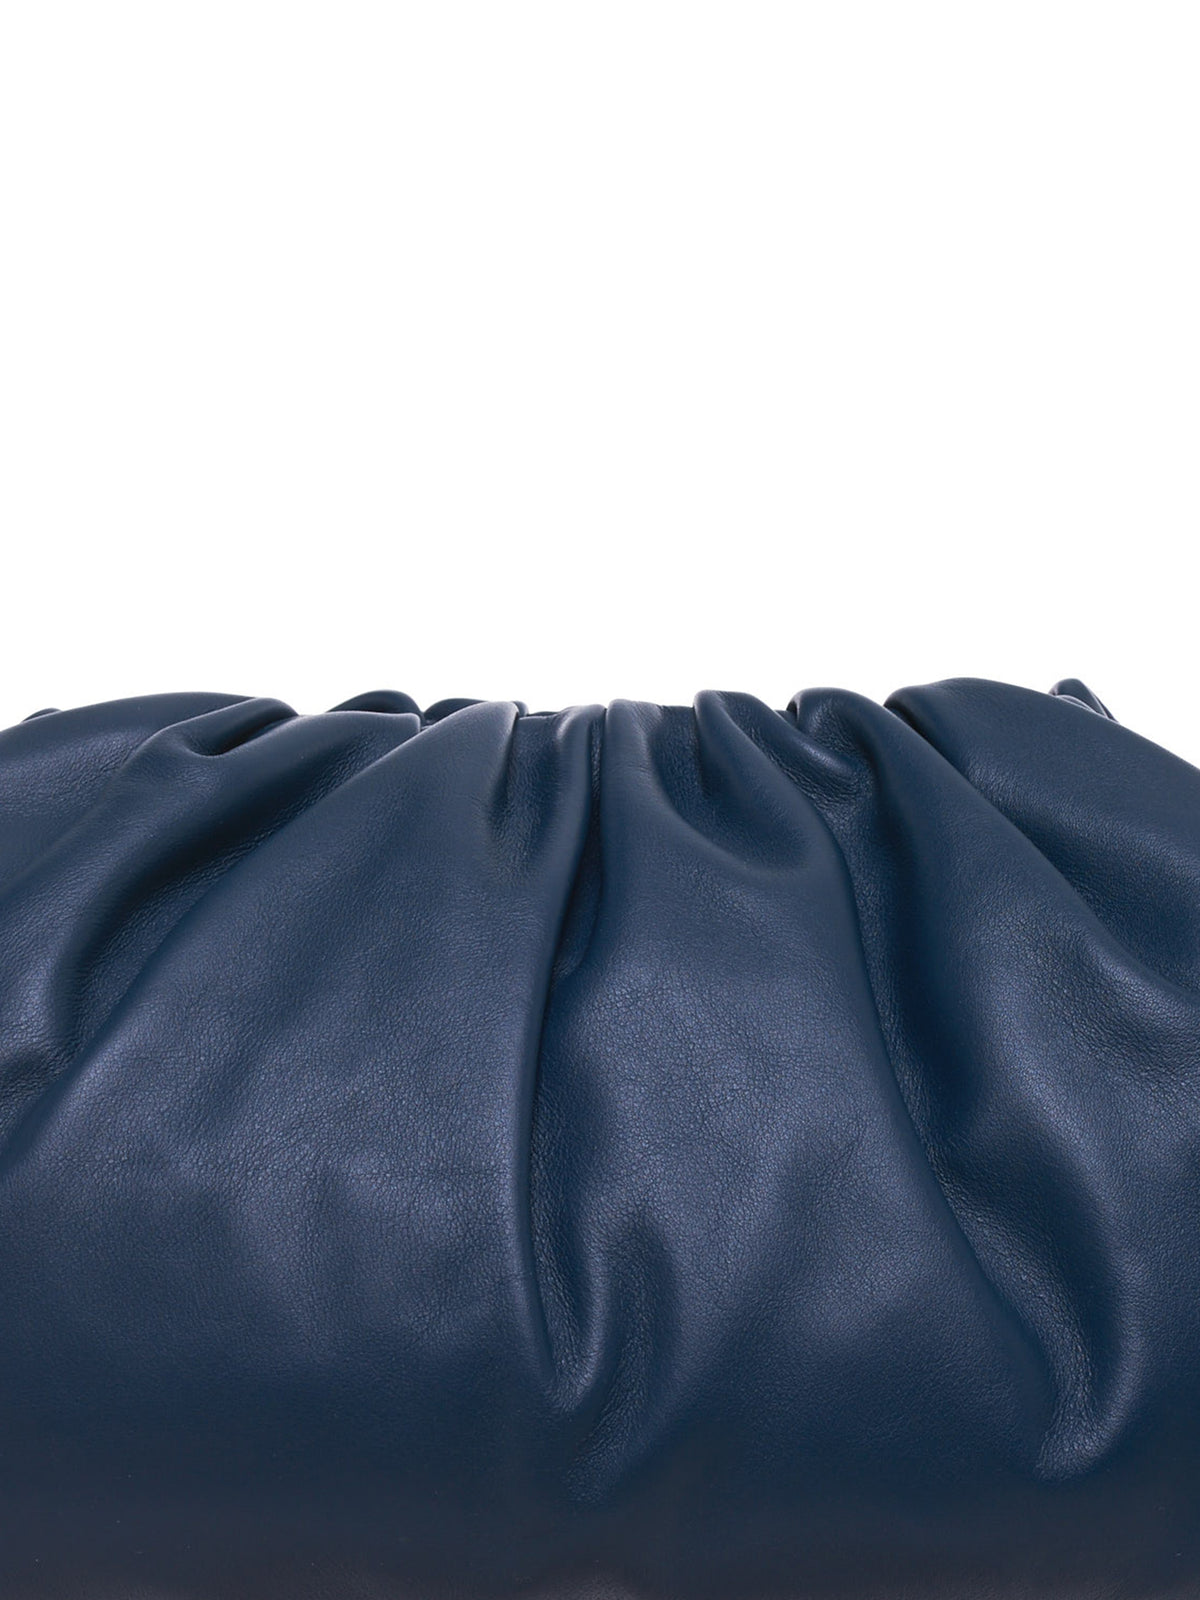 Gathered Leather Clutch (576227VBIU5-3126-DEEP-BLUE)